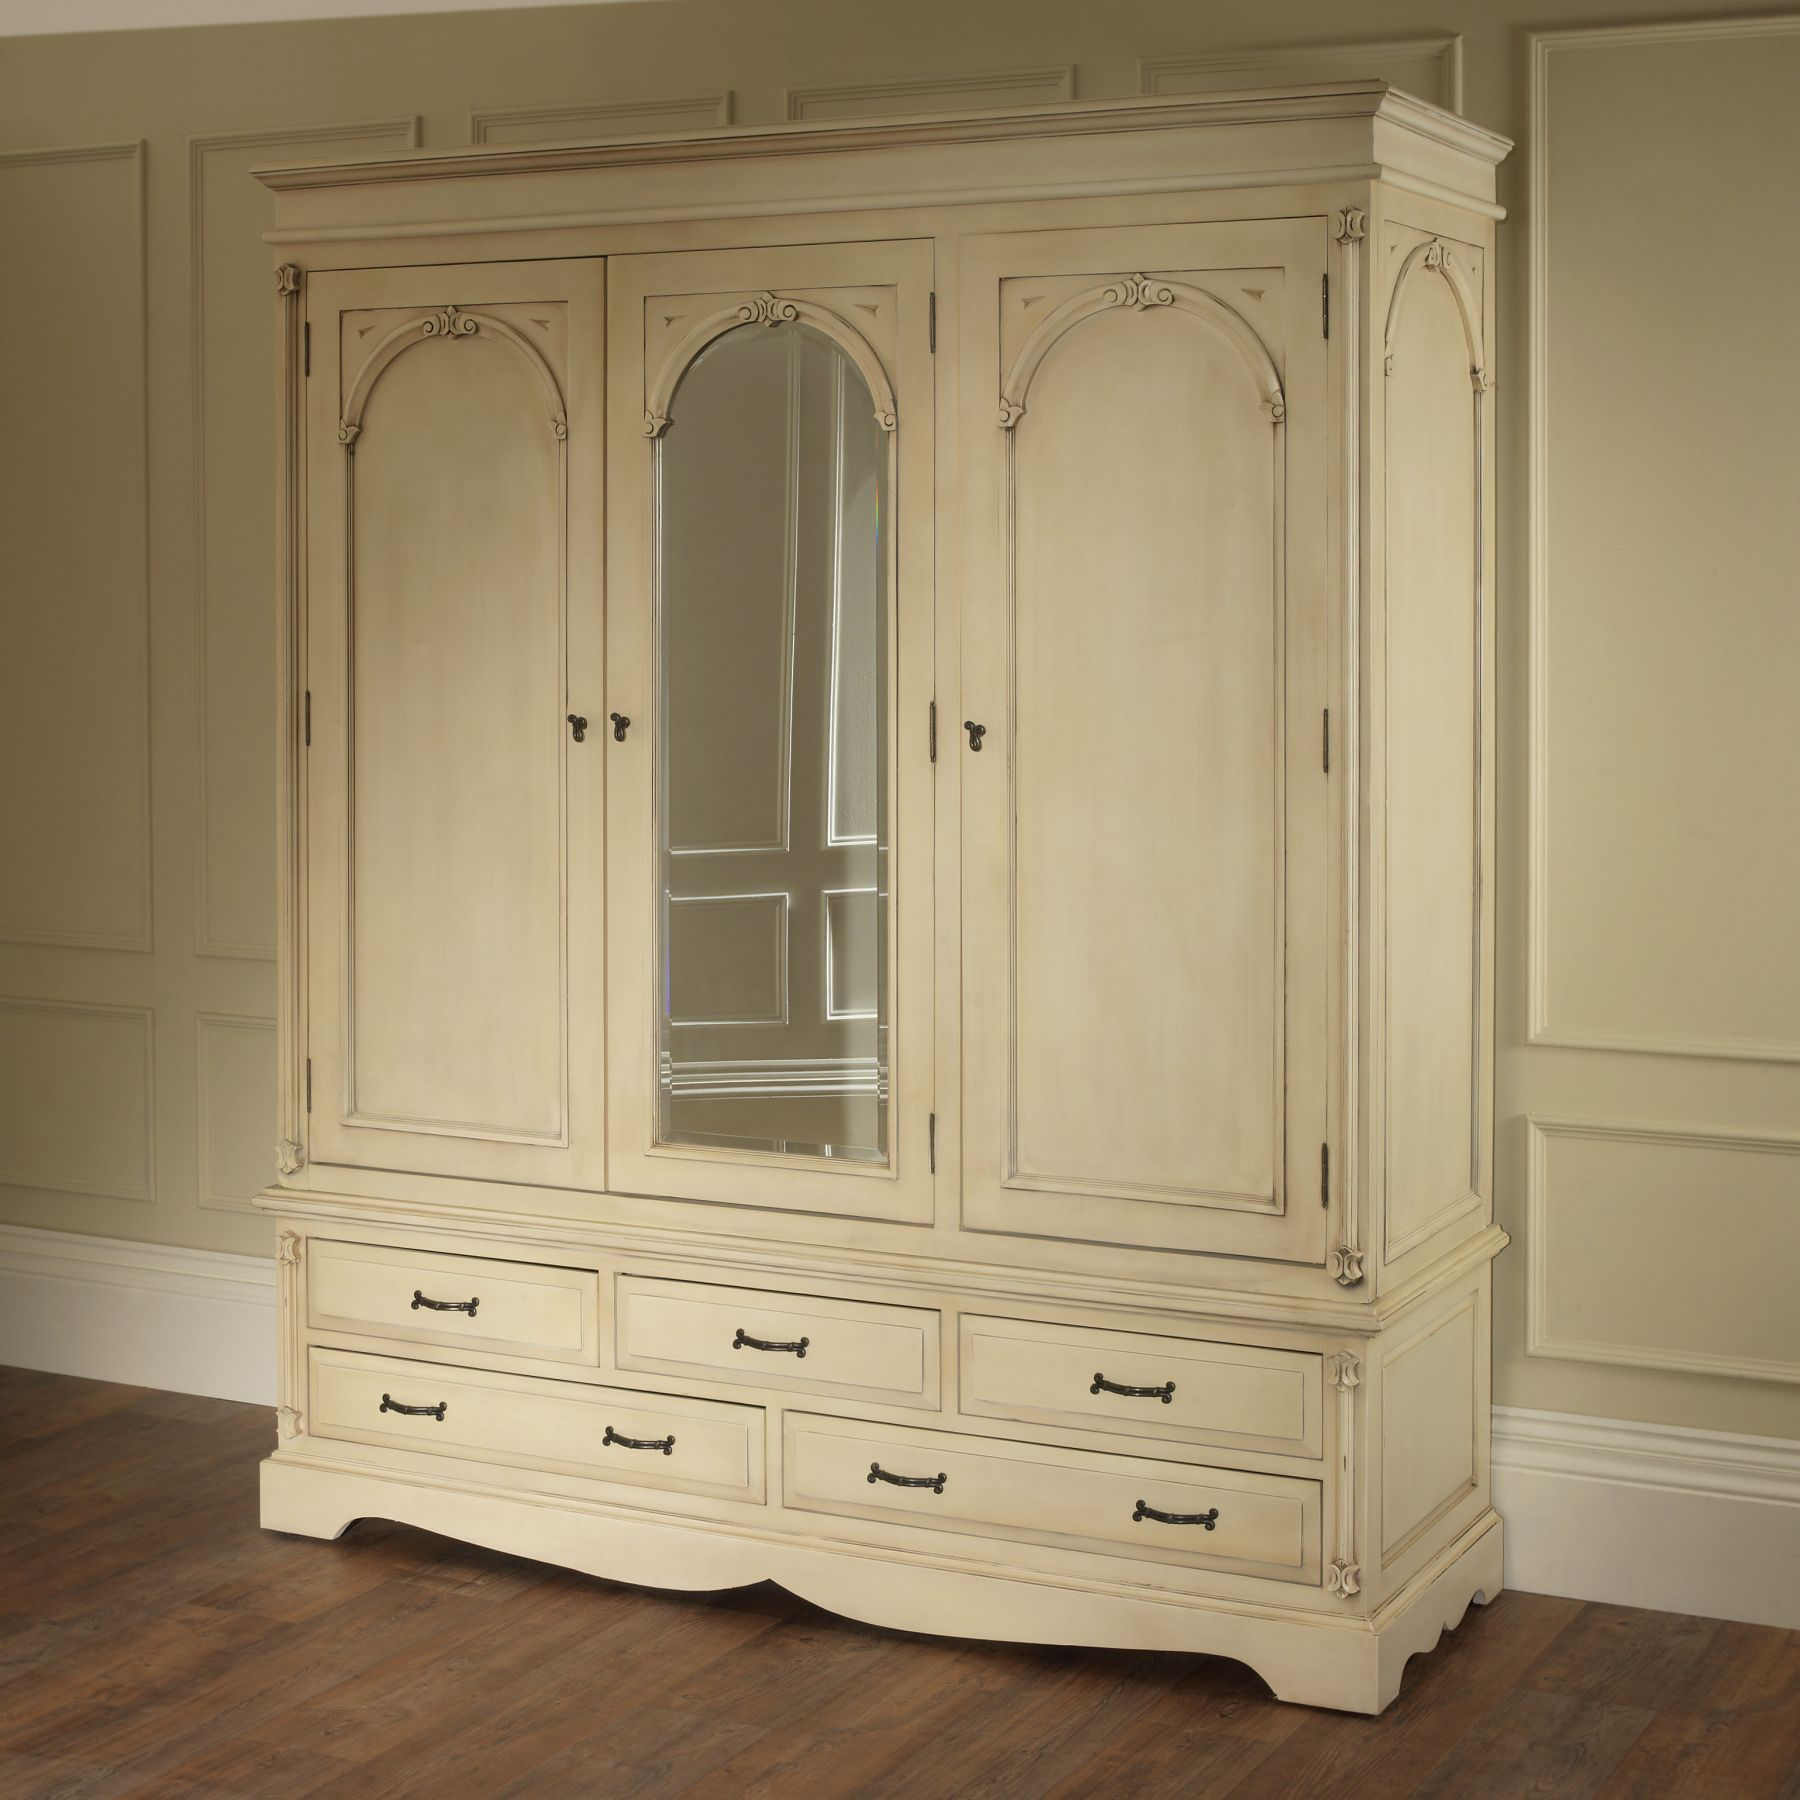 Baby Furniture Sets with Armoire | Armoire Furniture | Storage Armoire